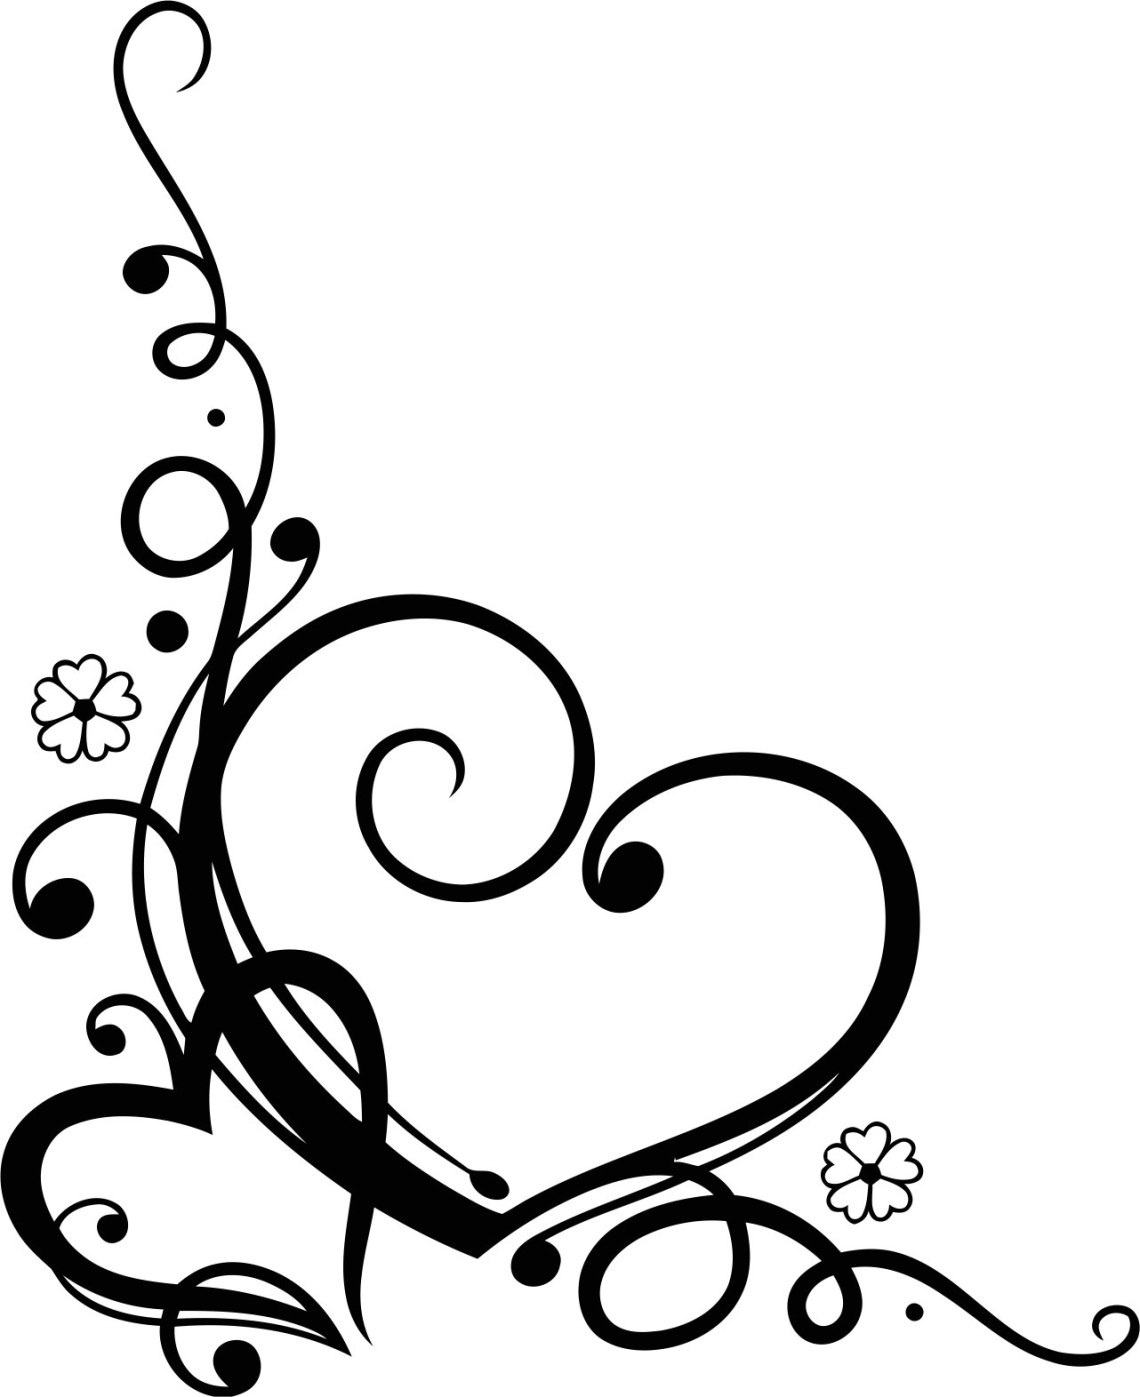 Download Love Heart Floral Vector Free Vector cdr Download - 3axis.co